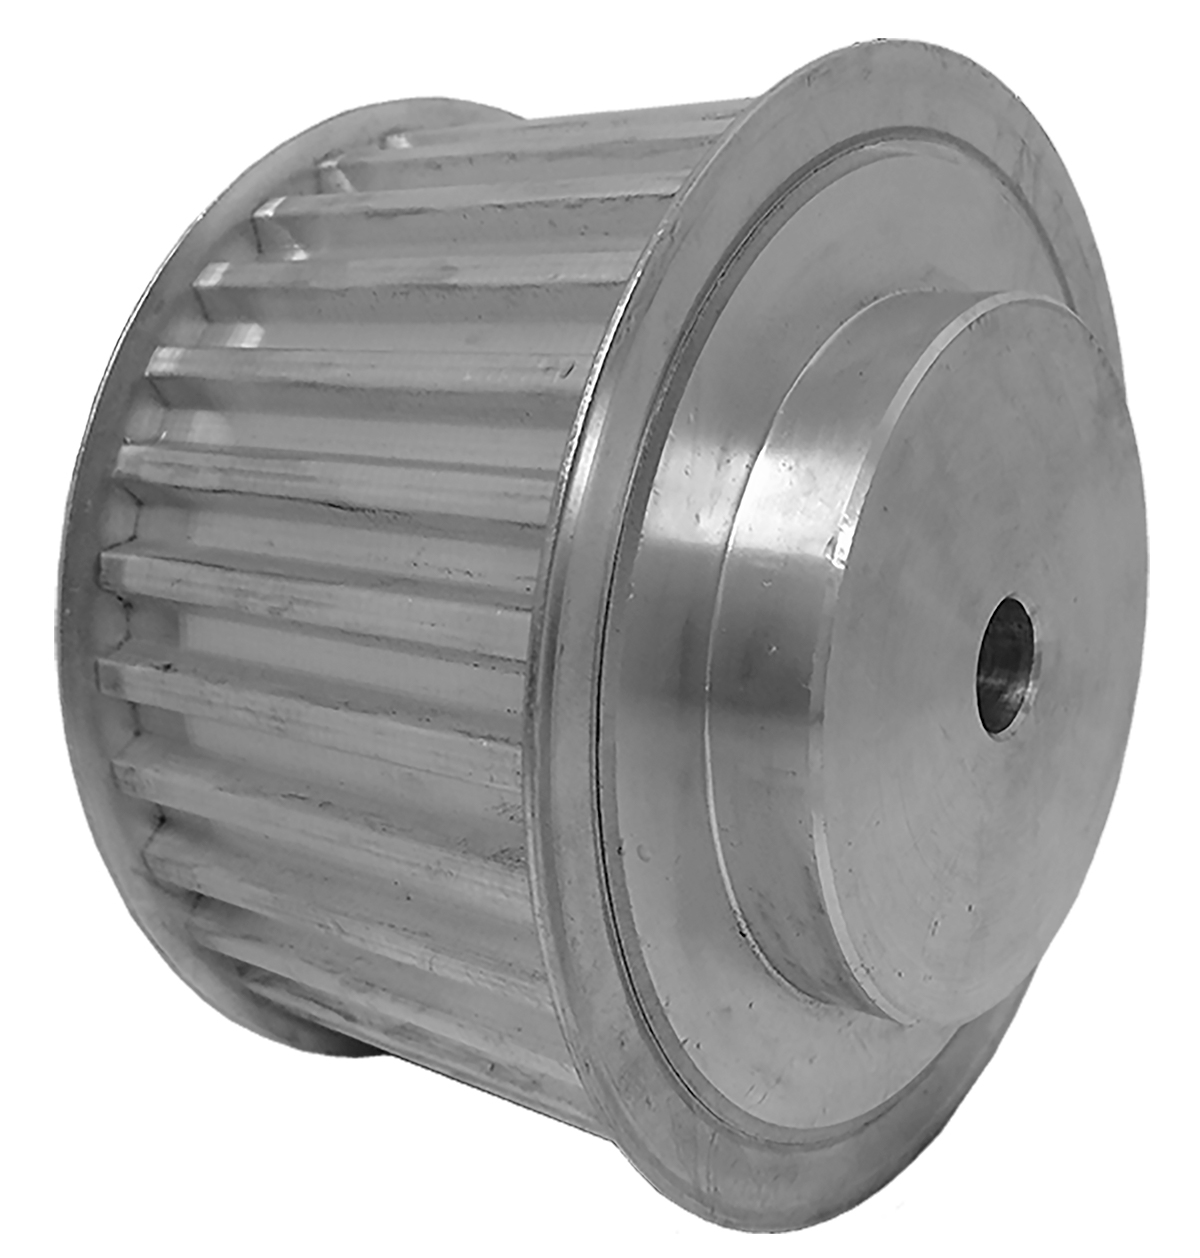 66T10/32-2 - Aluminum Metric Pulleys